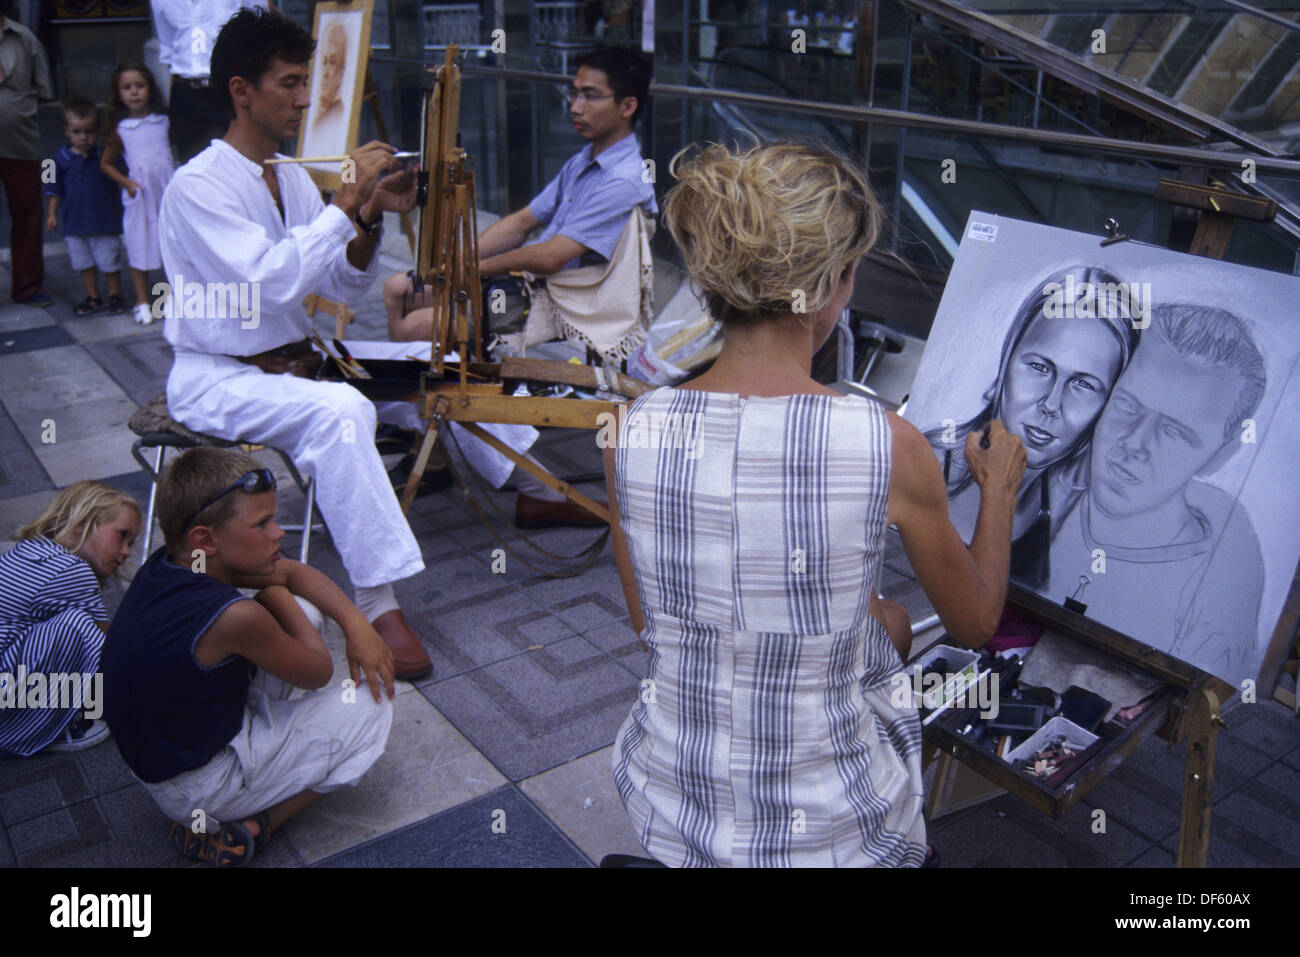 Drawing caricatures in Major Square. Palma de Mallorca. Balearic Islands. Spain - Stock Image